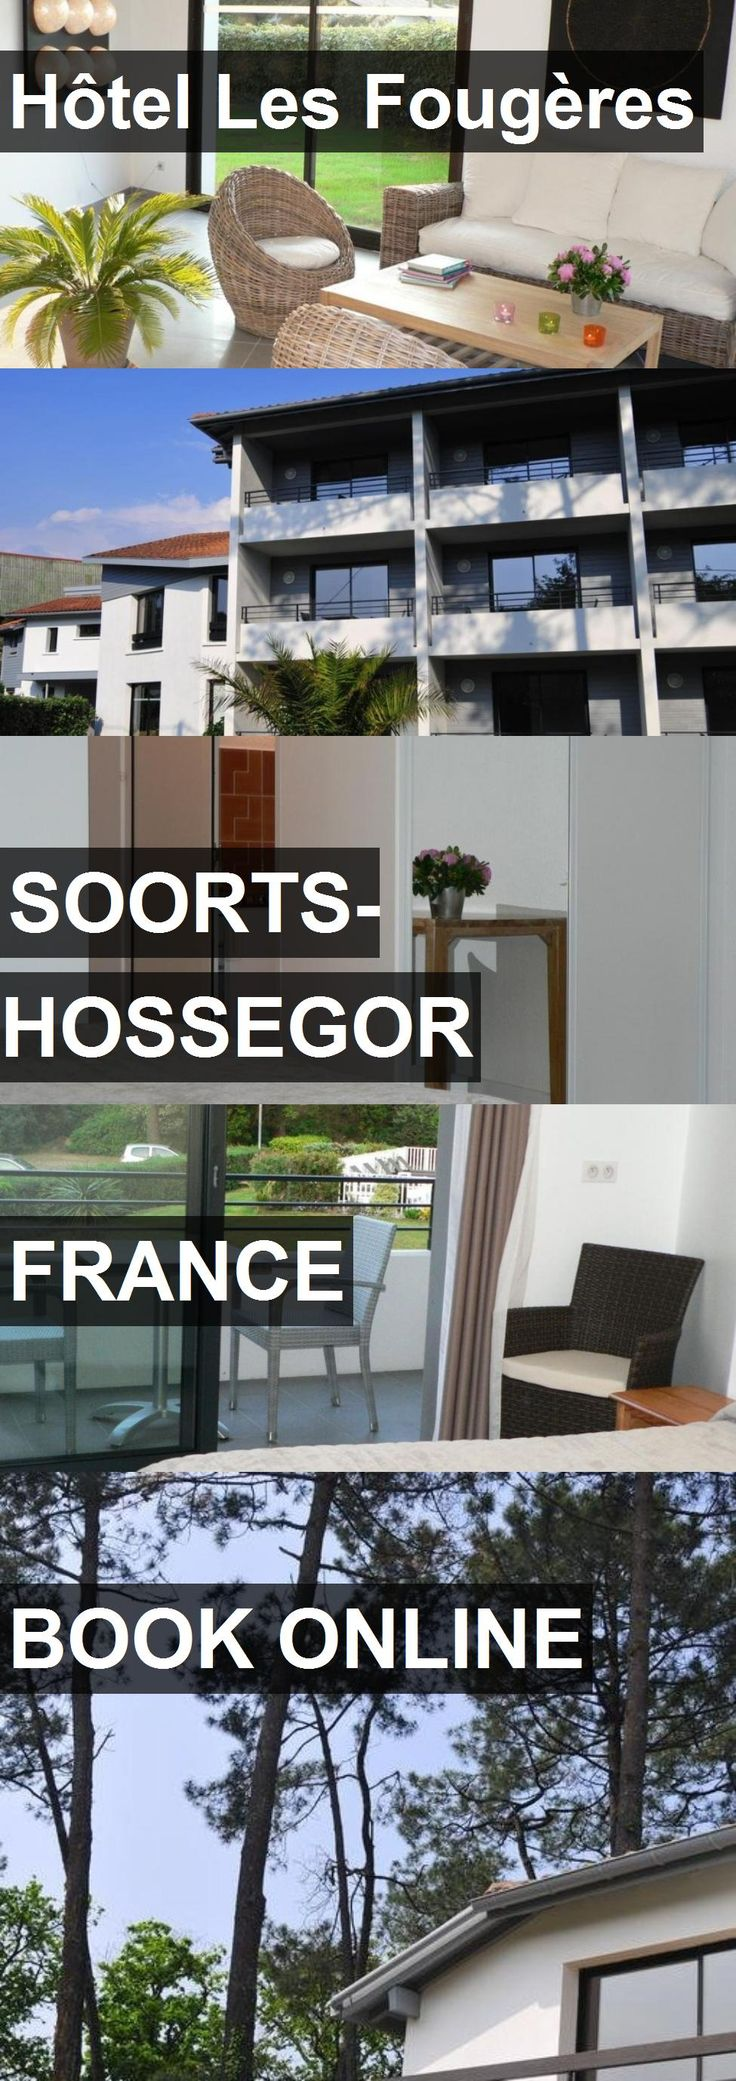 Hotel Hôtel Les Fougères in Soorts-Hossegor, France. For more information, photos, reviews and best prices please follow the link. #France #Soorts-Hossegor #HôtelLesFougères #hotel #travel #vacation